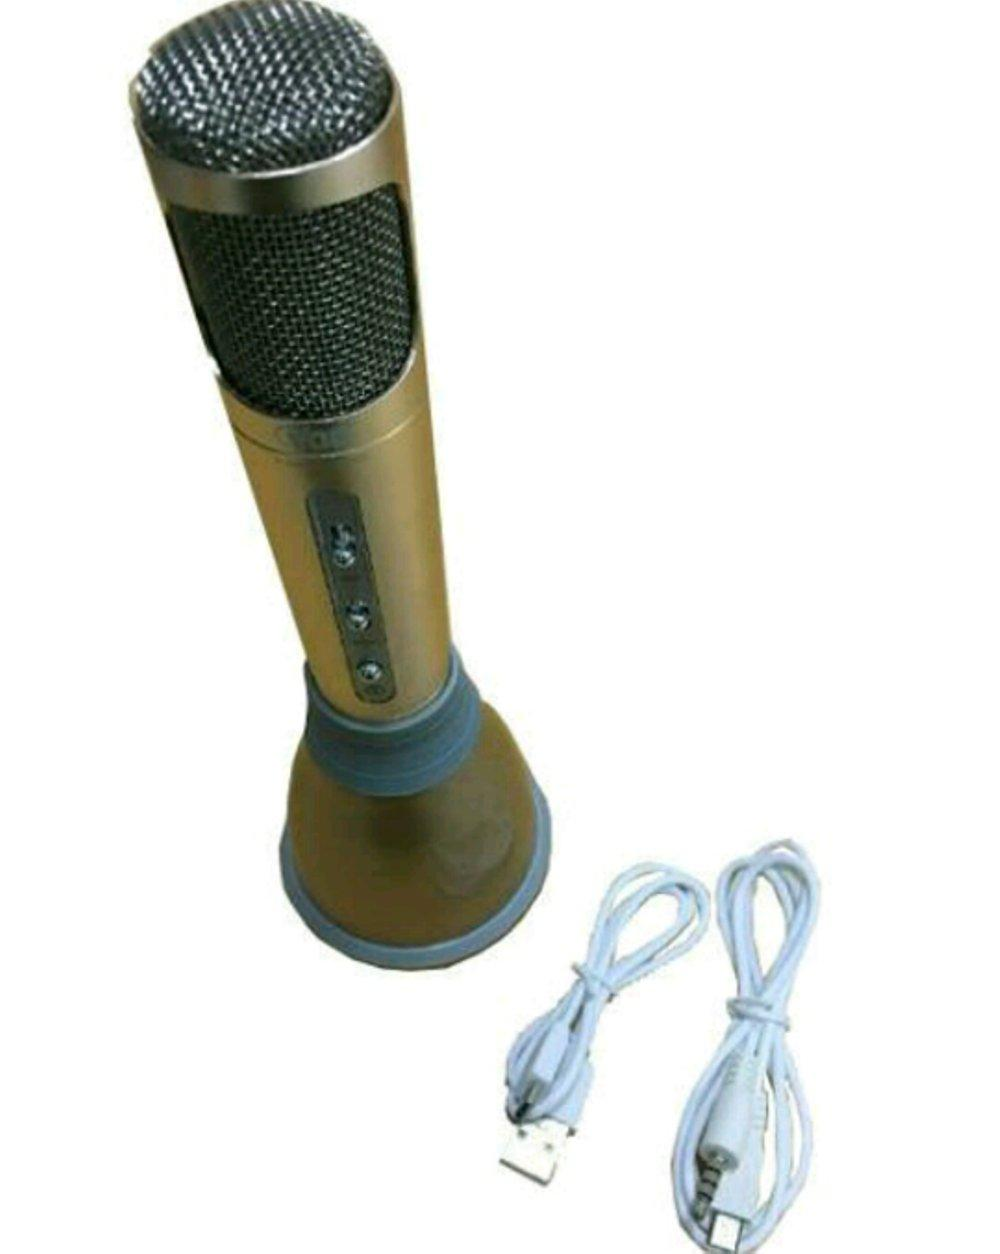 Buy Sell Cheapest Original Mic Smule Best Quality Product Deals Bluetooth Karaoke Wster Ws 858 Microphone Portable Vdr 10bt Wireless Speaker Usb